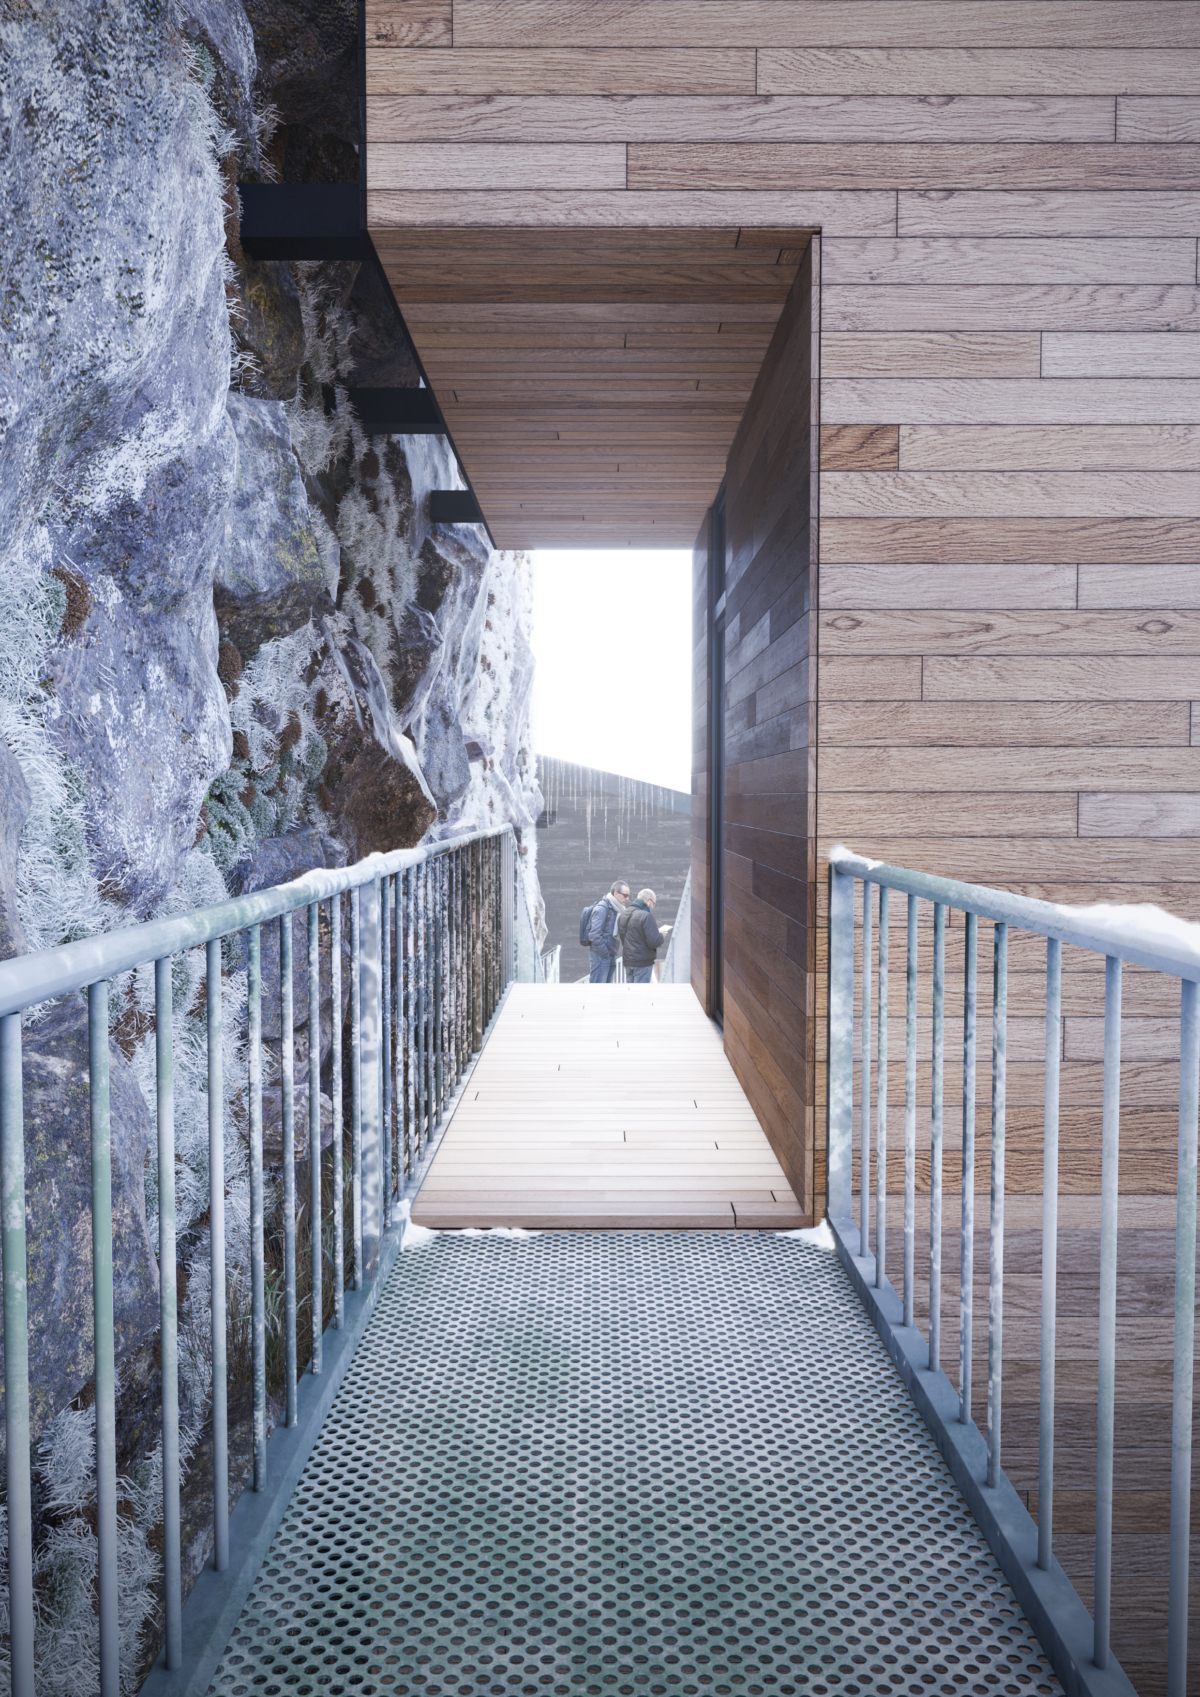 Manofactory Designs Nestingbox Cliff House To Hang Over